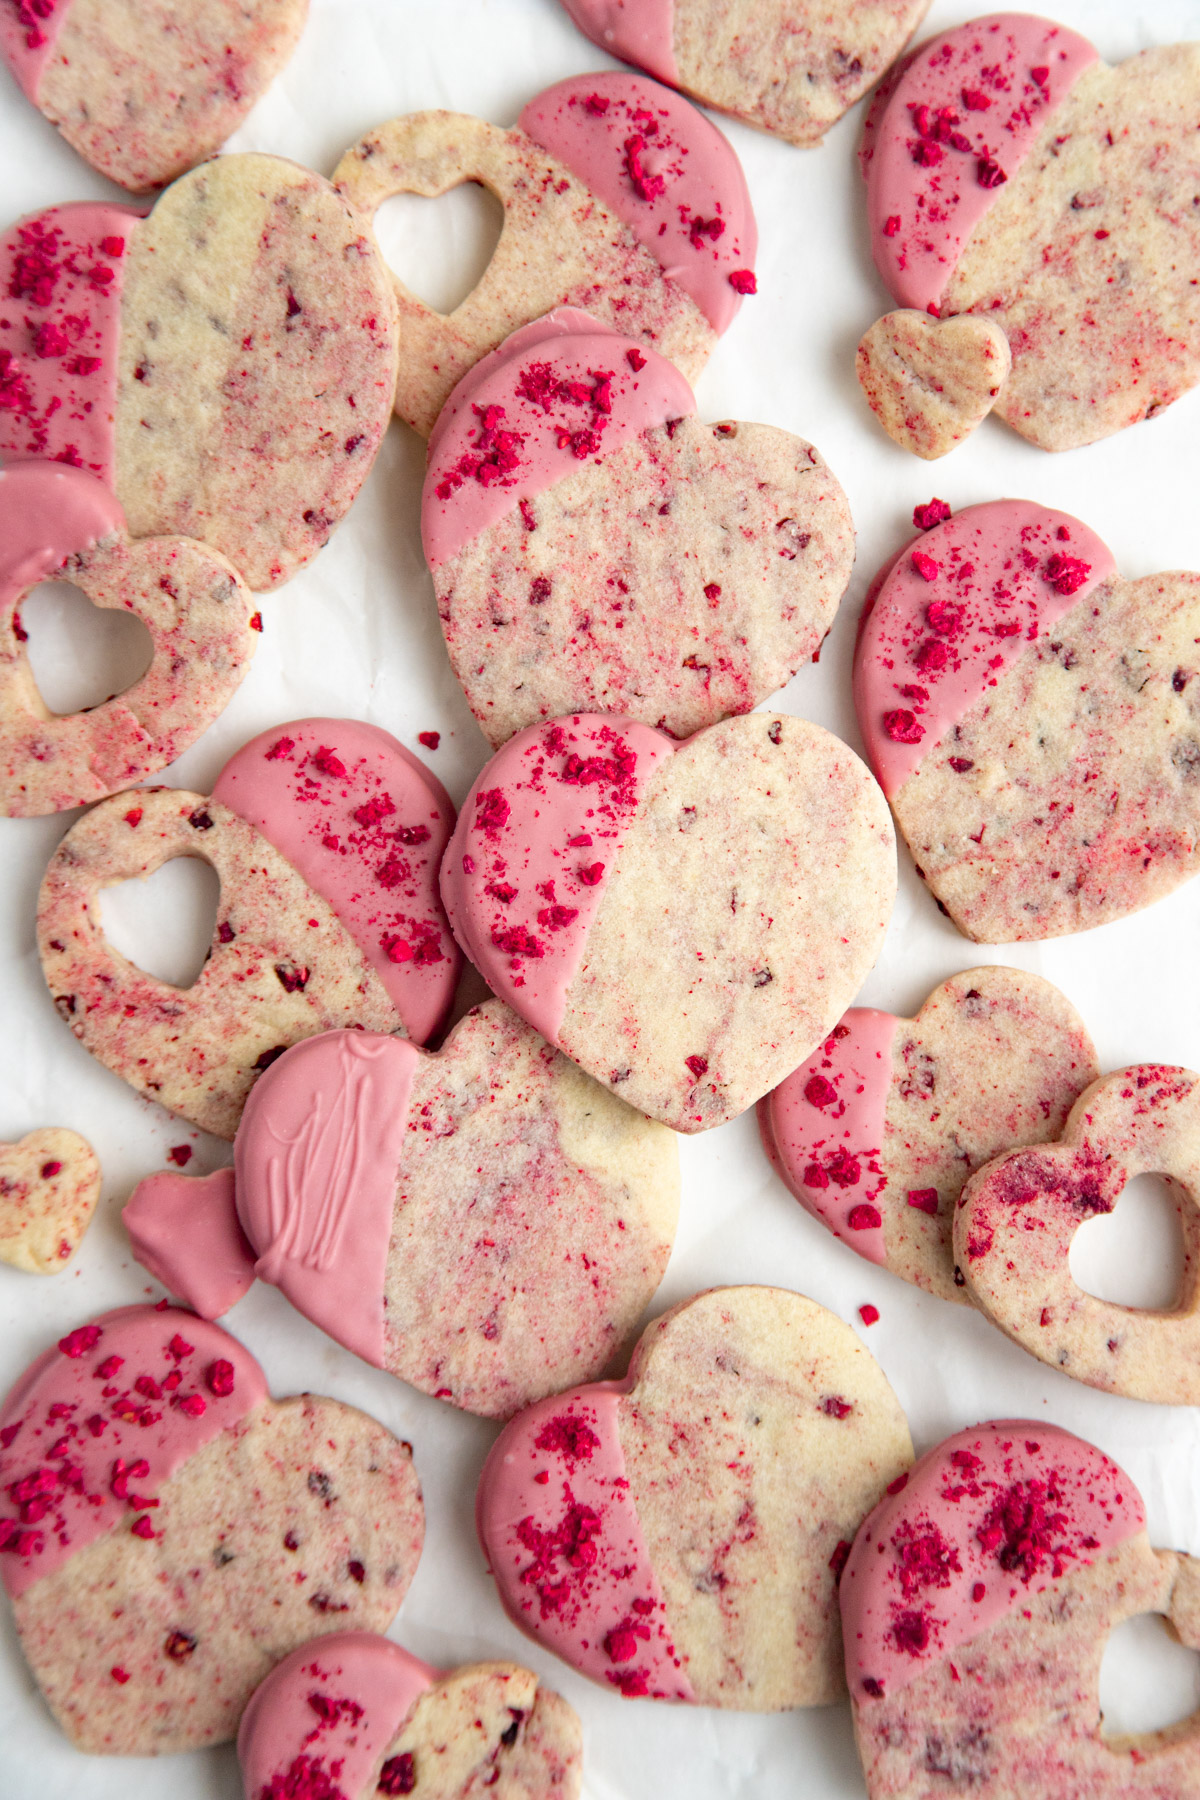 Raspberry heart-shaped shortbread cookies with ruby chocolate glaze